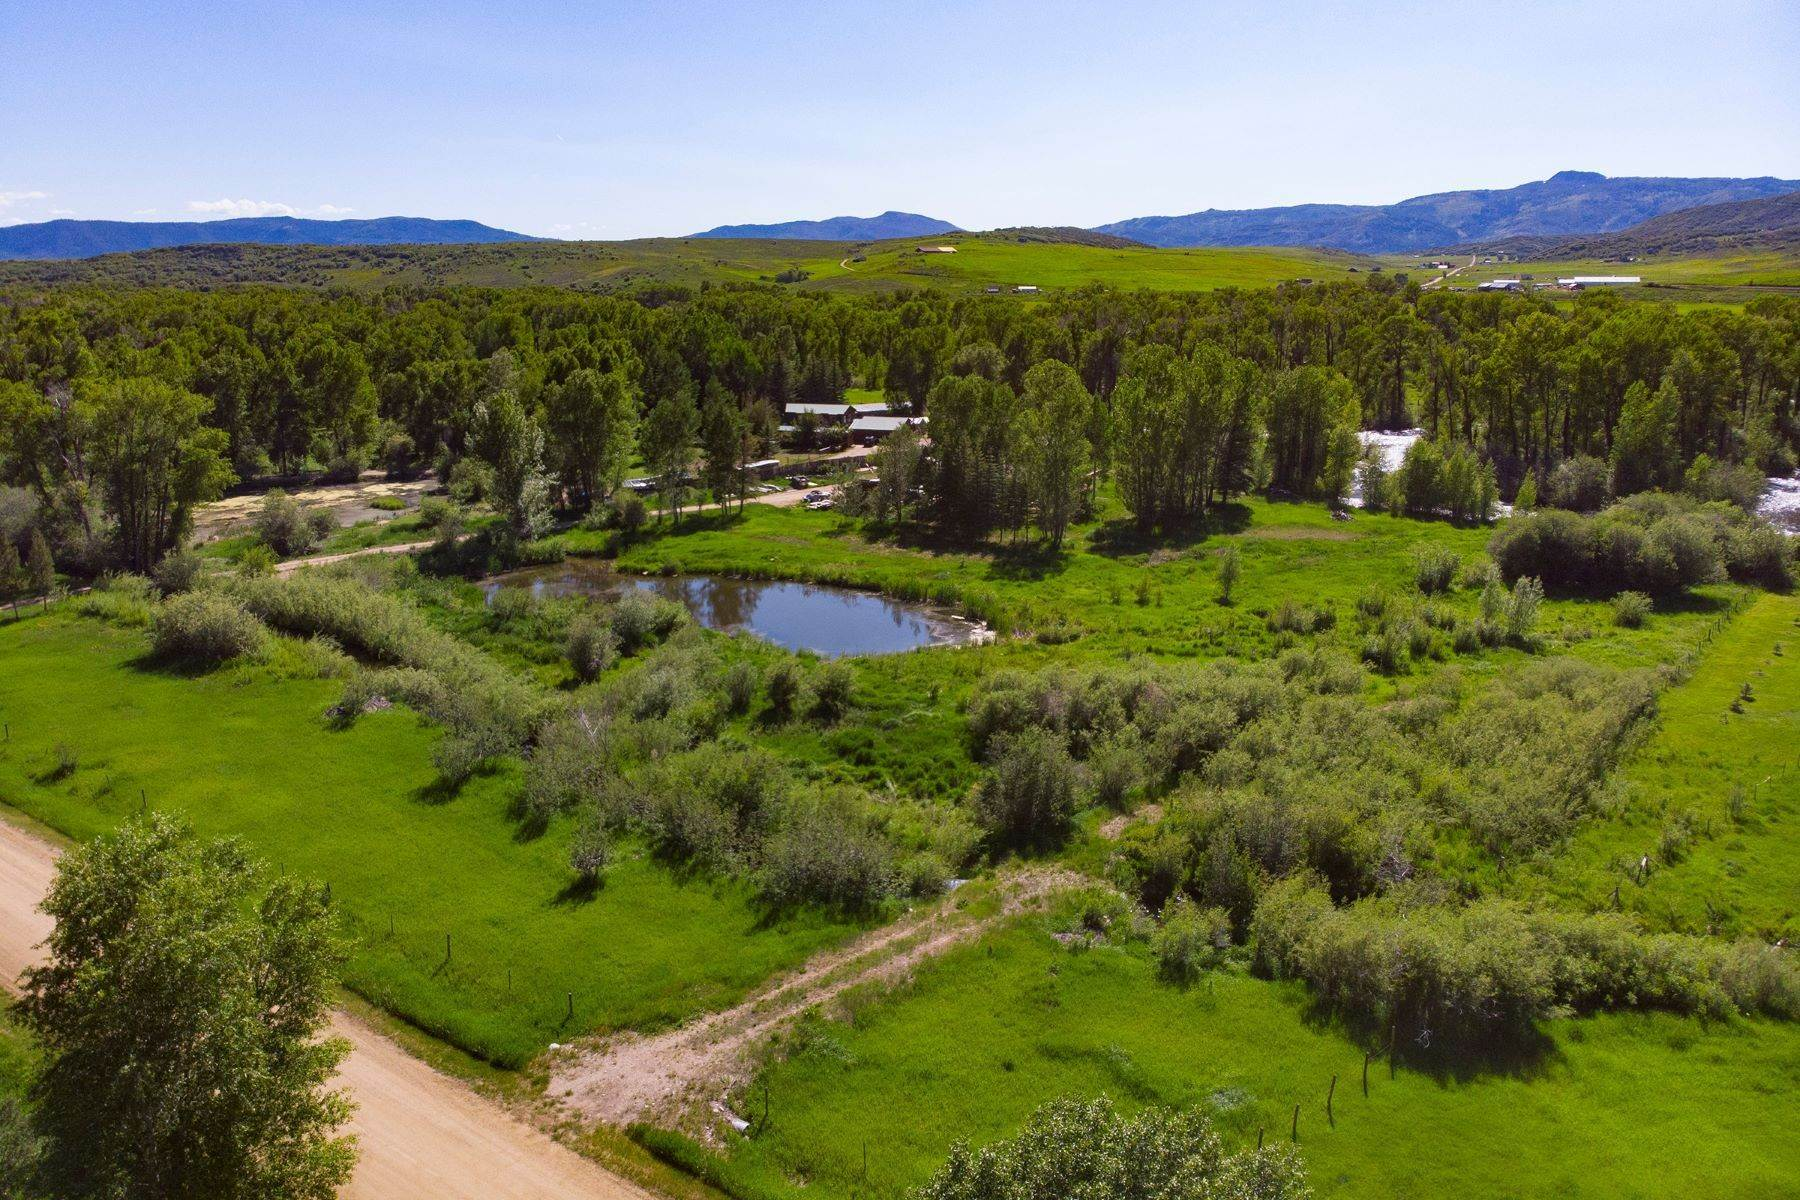 Land for Sale at Moon Hill Meadows Lot 50115 Moon Hill Drive Steamboat Springs, Colorado 80487 United States